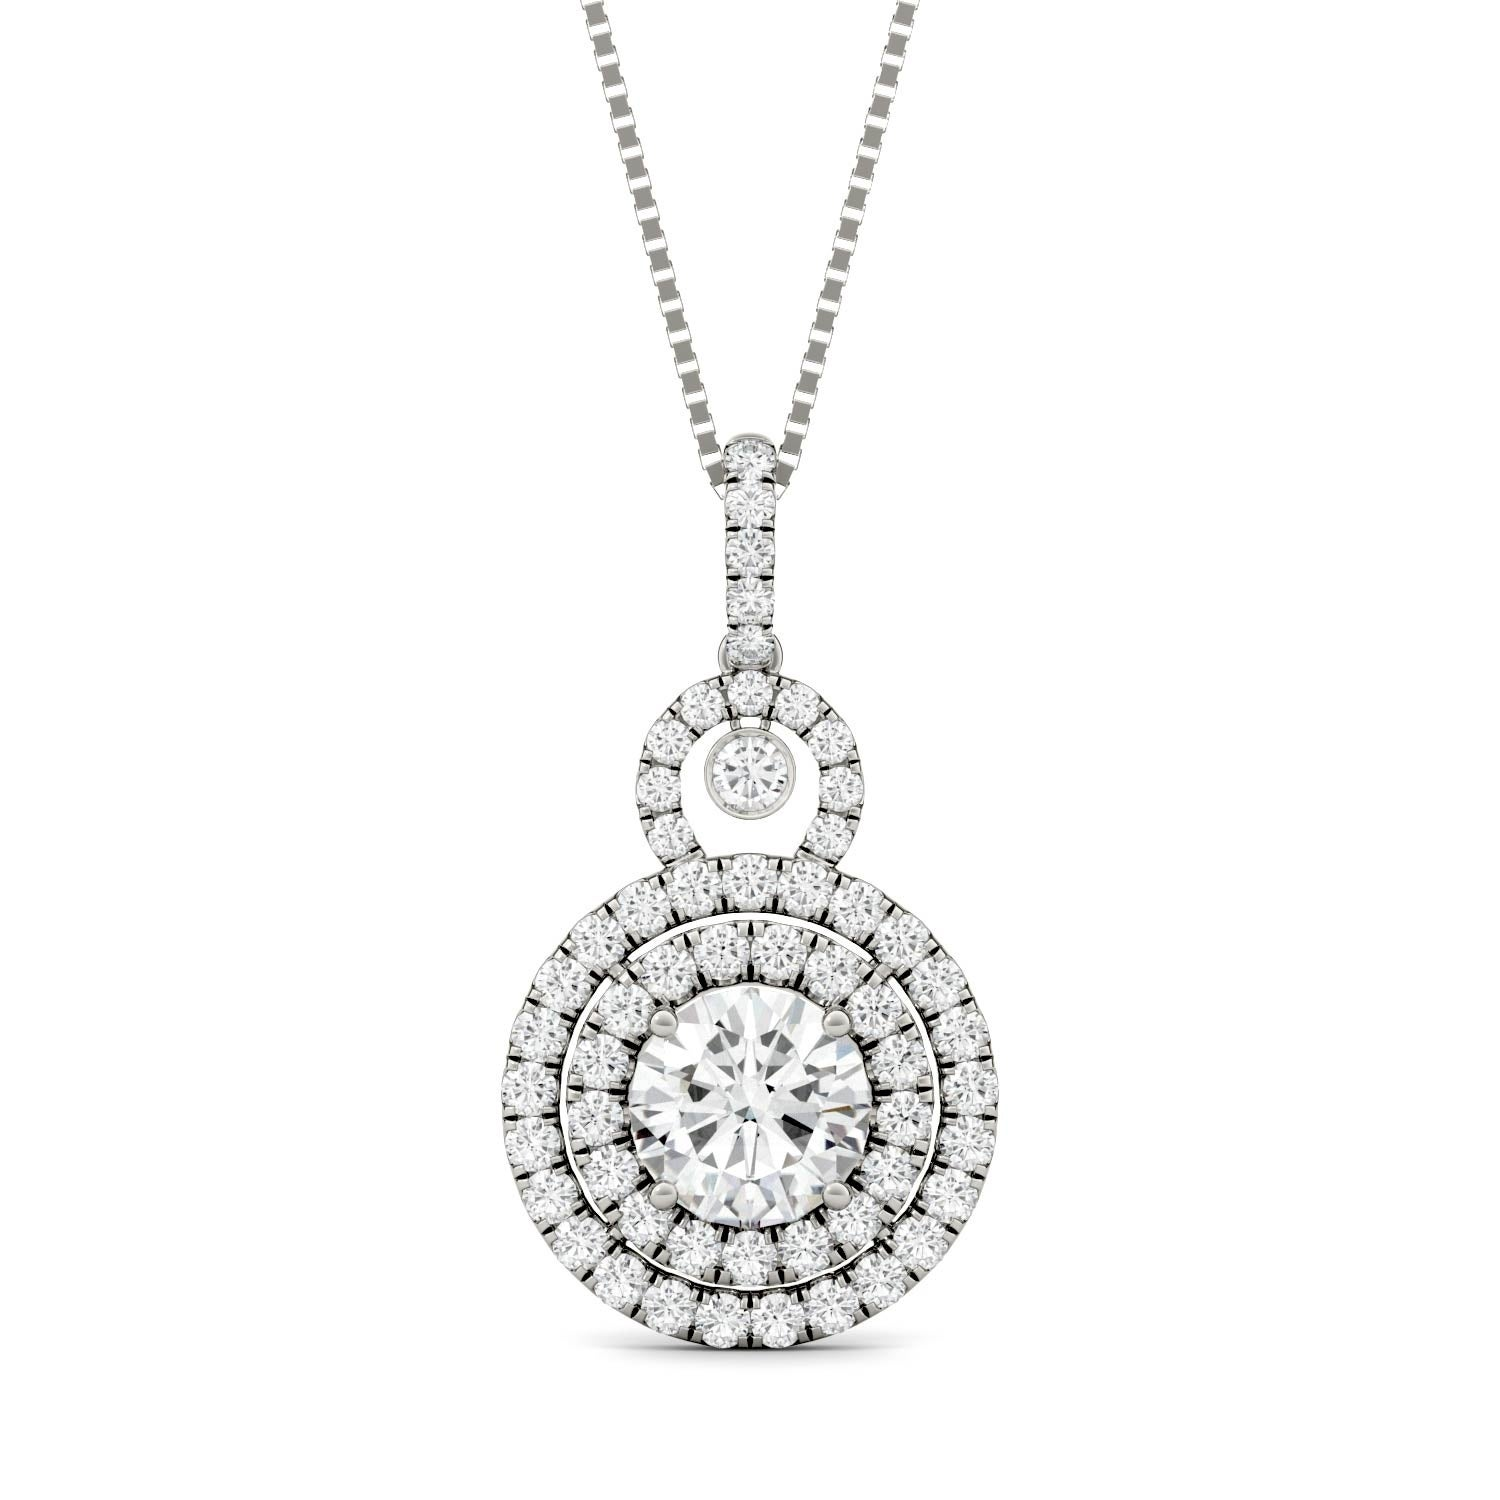 charles circle in sterling tgw stunning necklace moissanite classic displays round pin this colvard pendant silver a cut